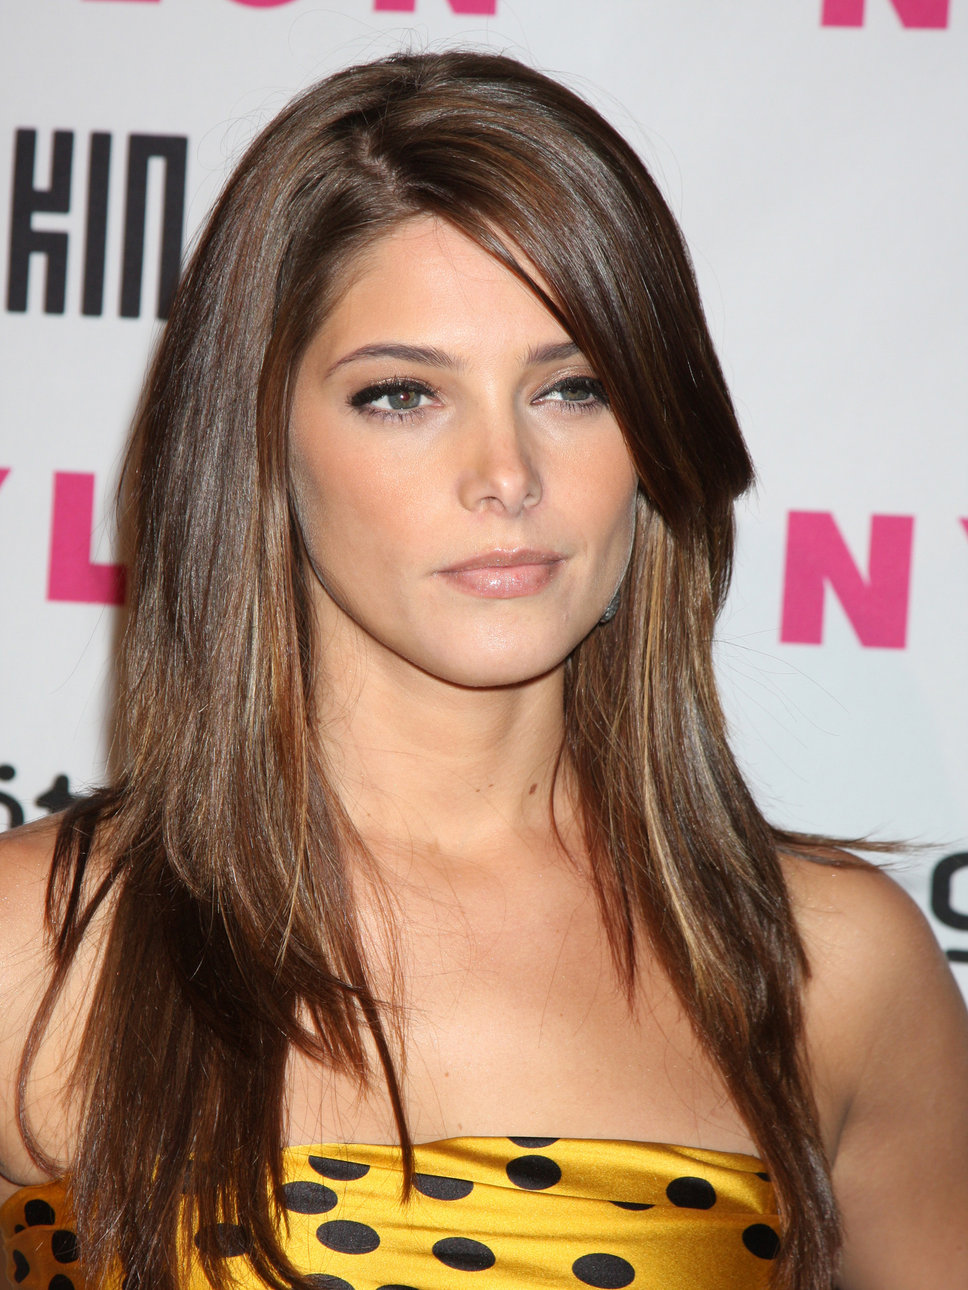 New Hairstyles: Elegant Straight Hairstyles for Girls